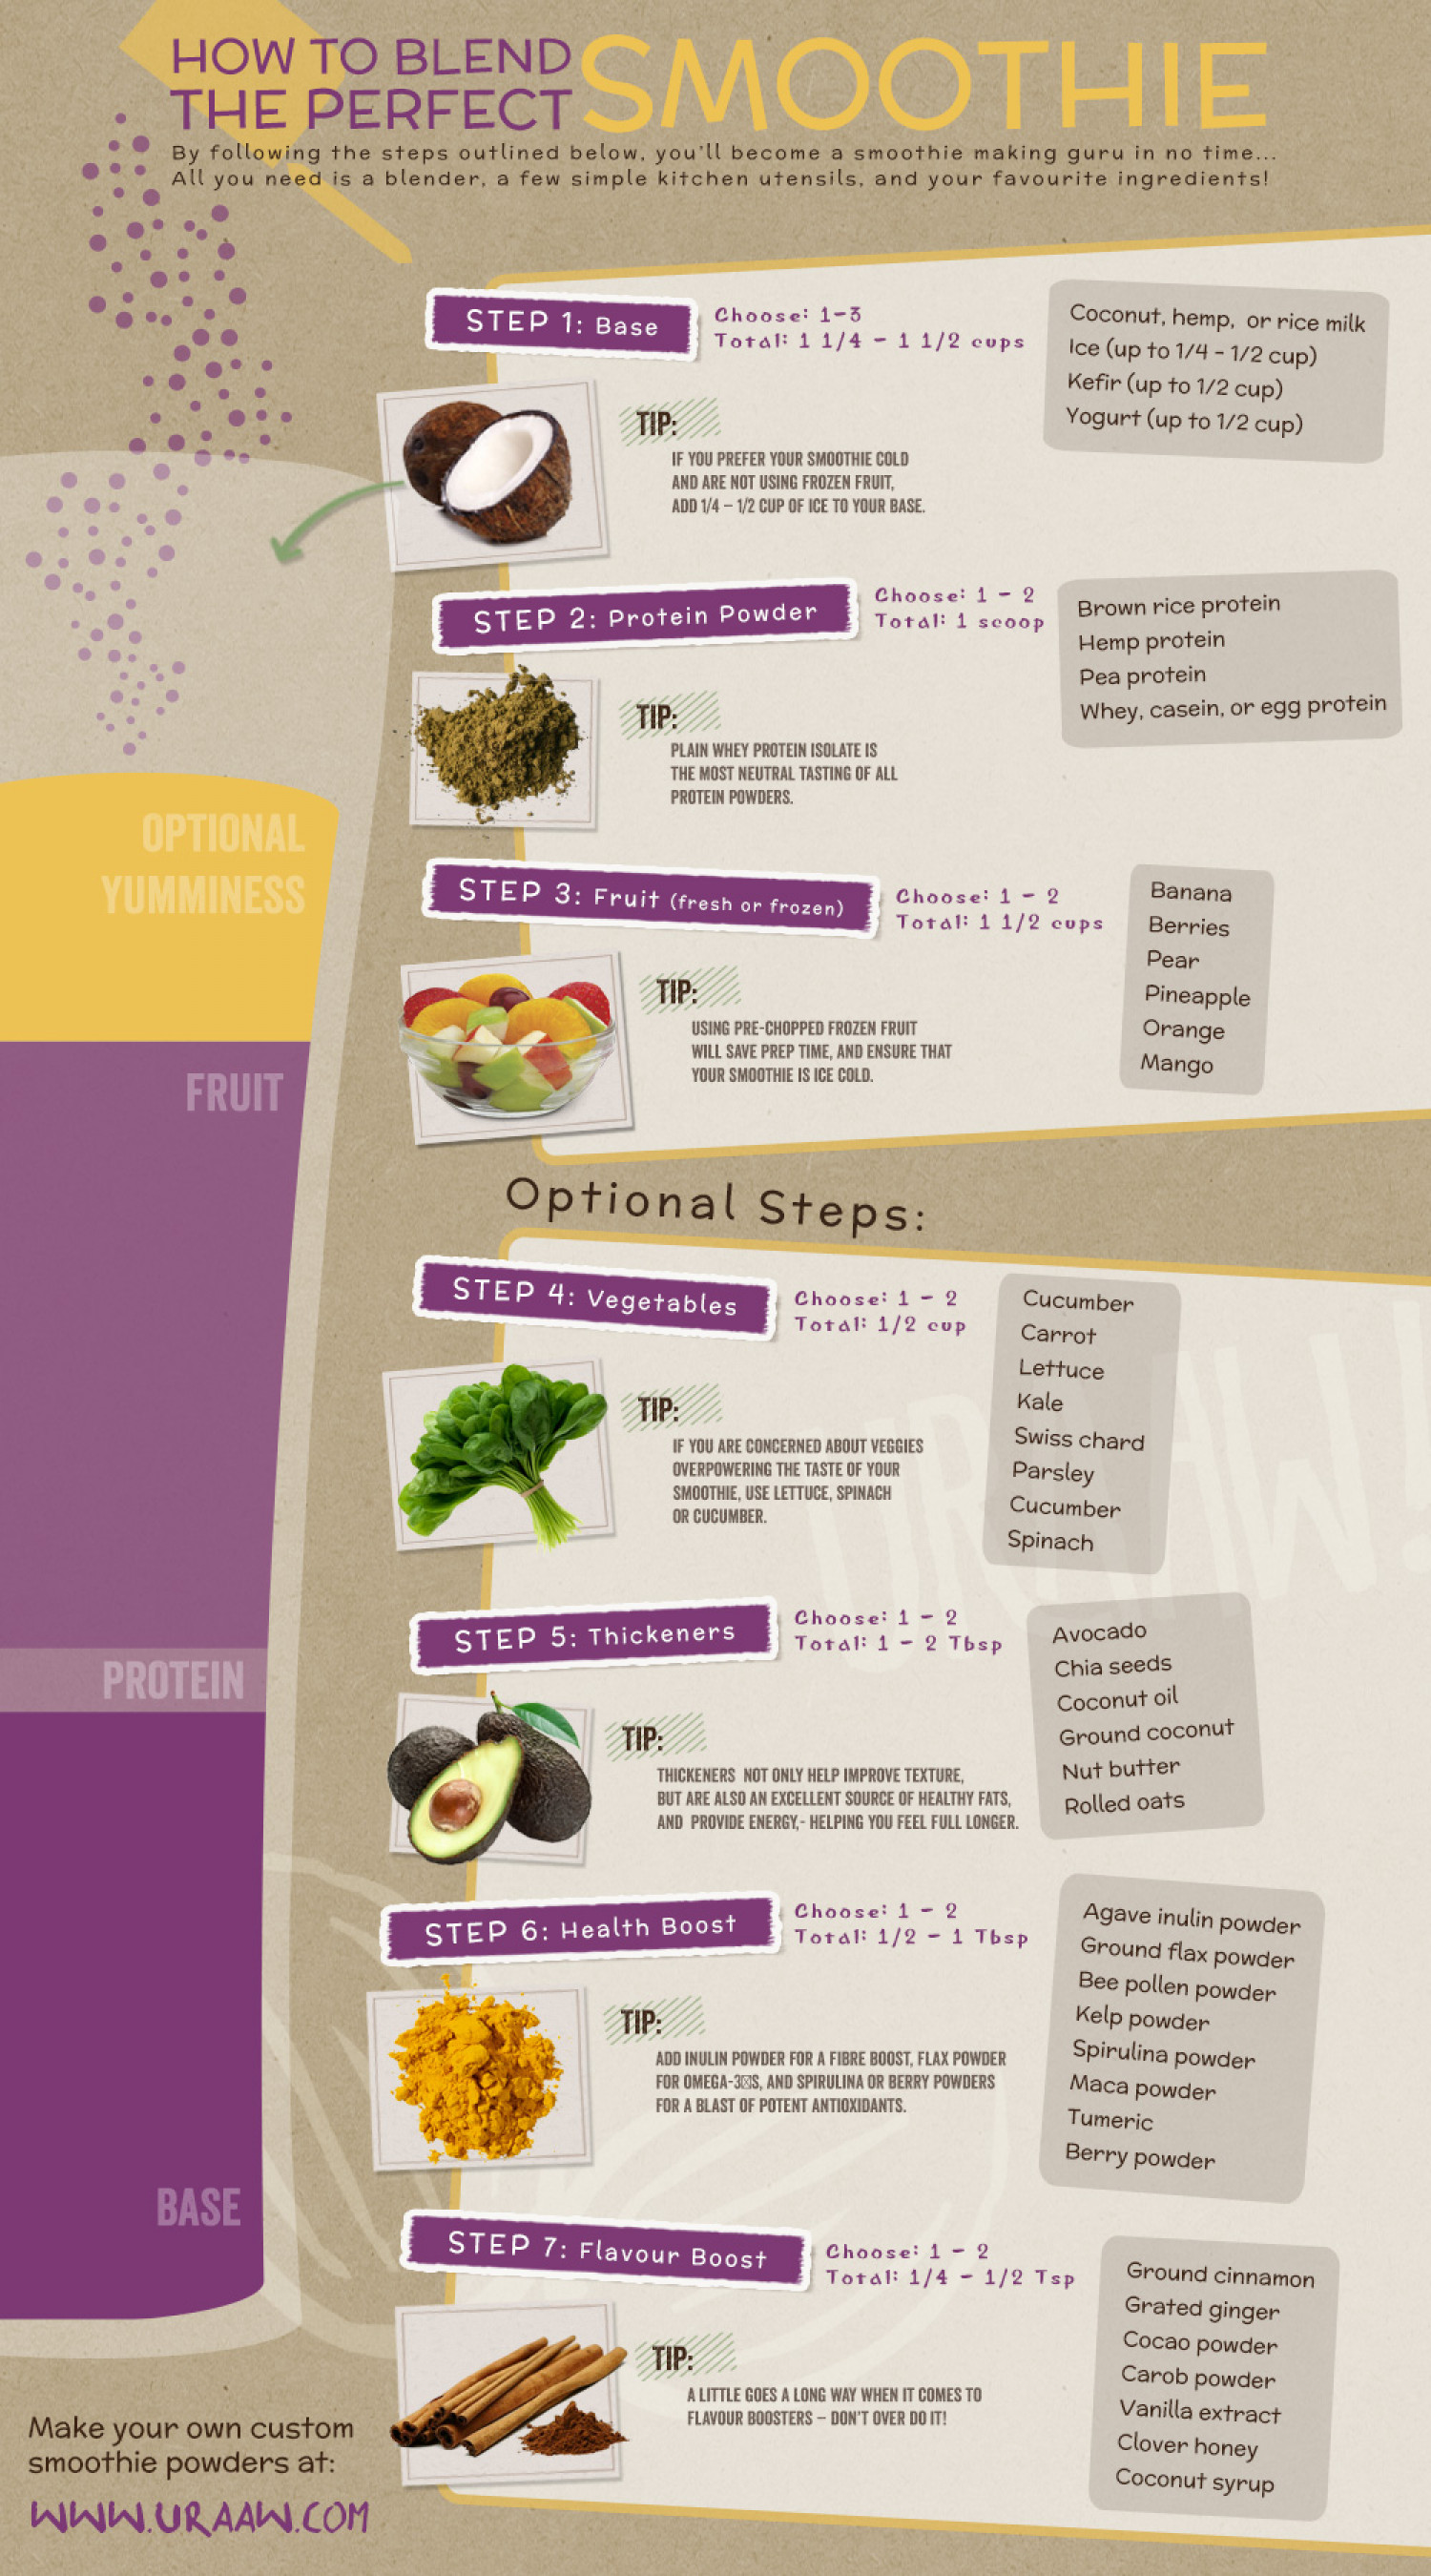 How to Blend the Perfect Smoothie Infographic